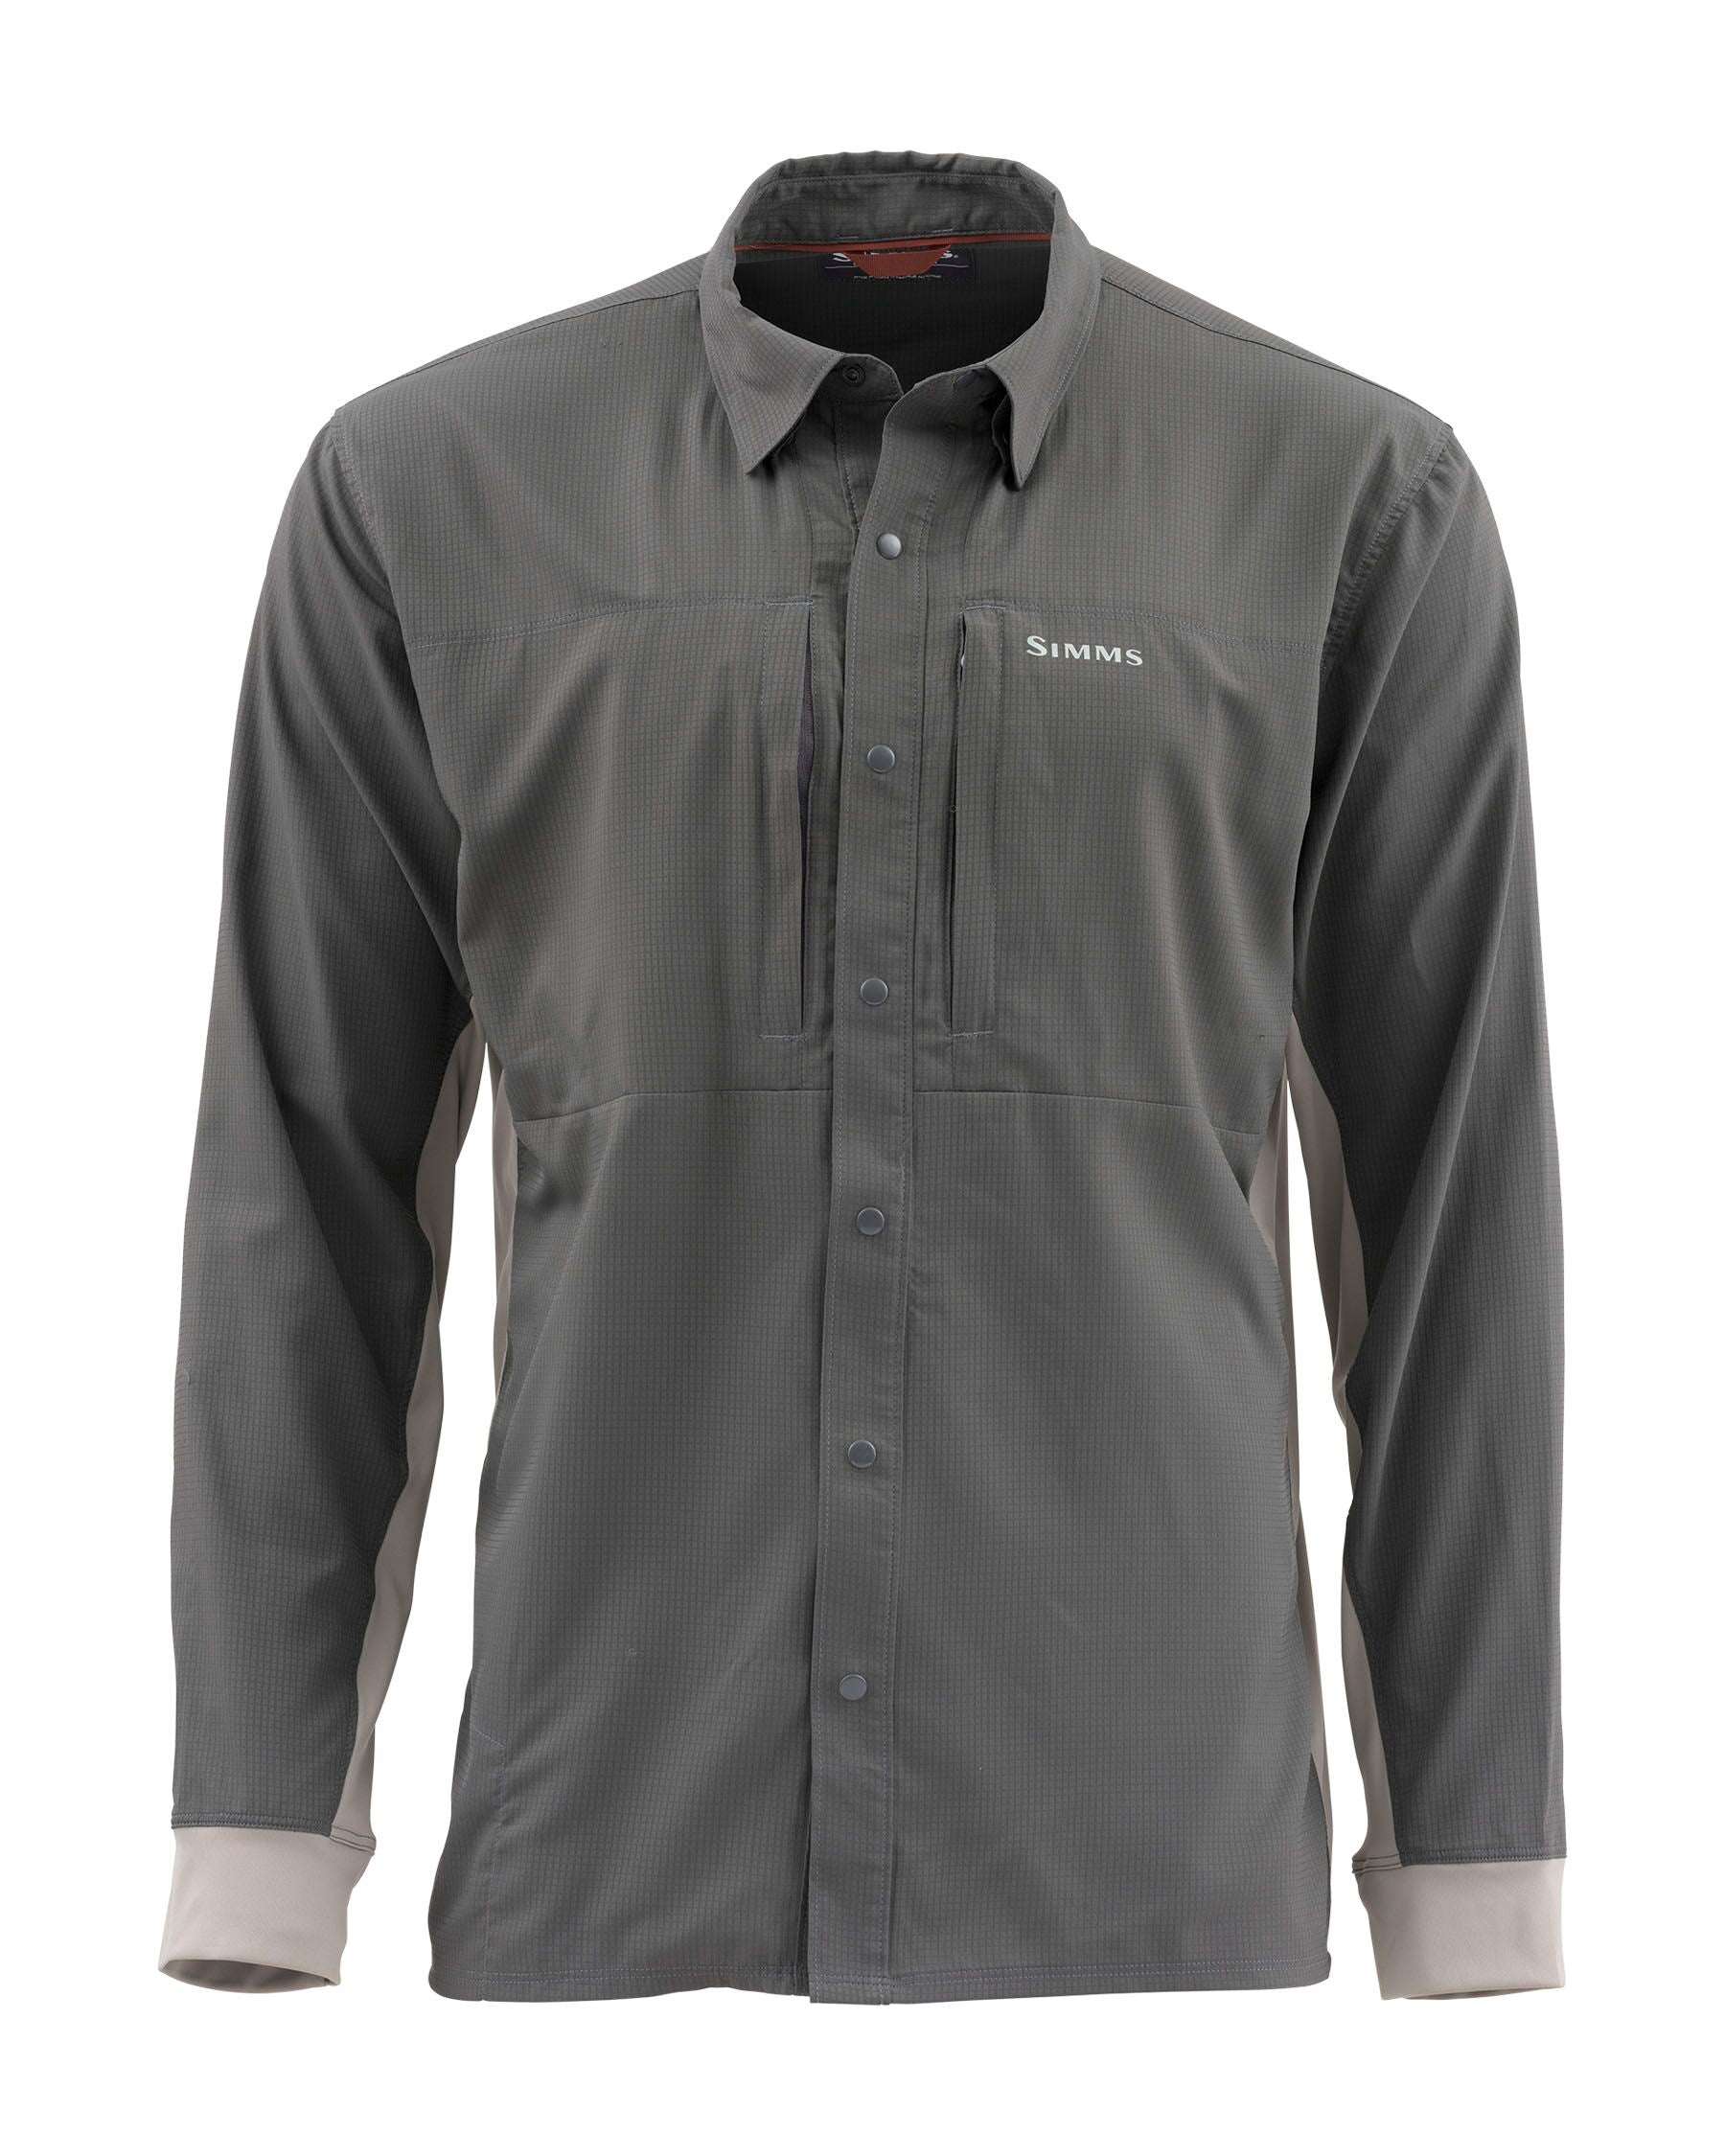 Simms Intruder Bicomp Long-Sleeved Shirt Slate